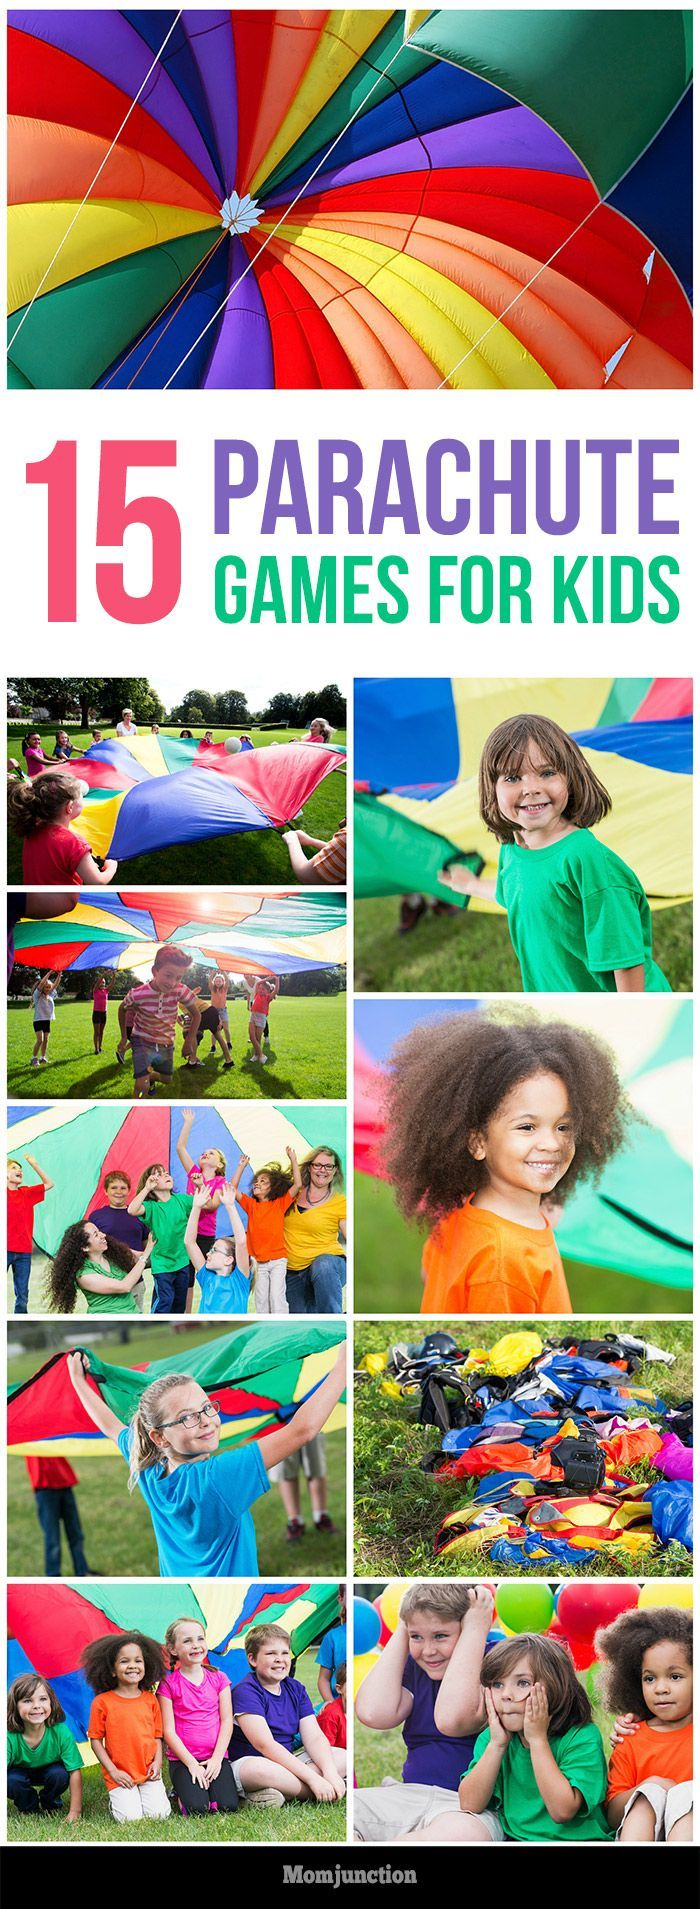 17 Fun Parachute Games And Activities For Kids